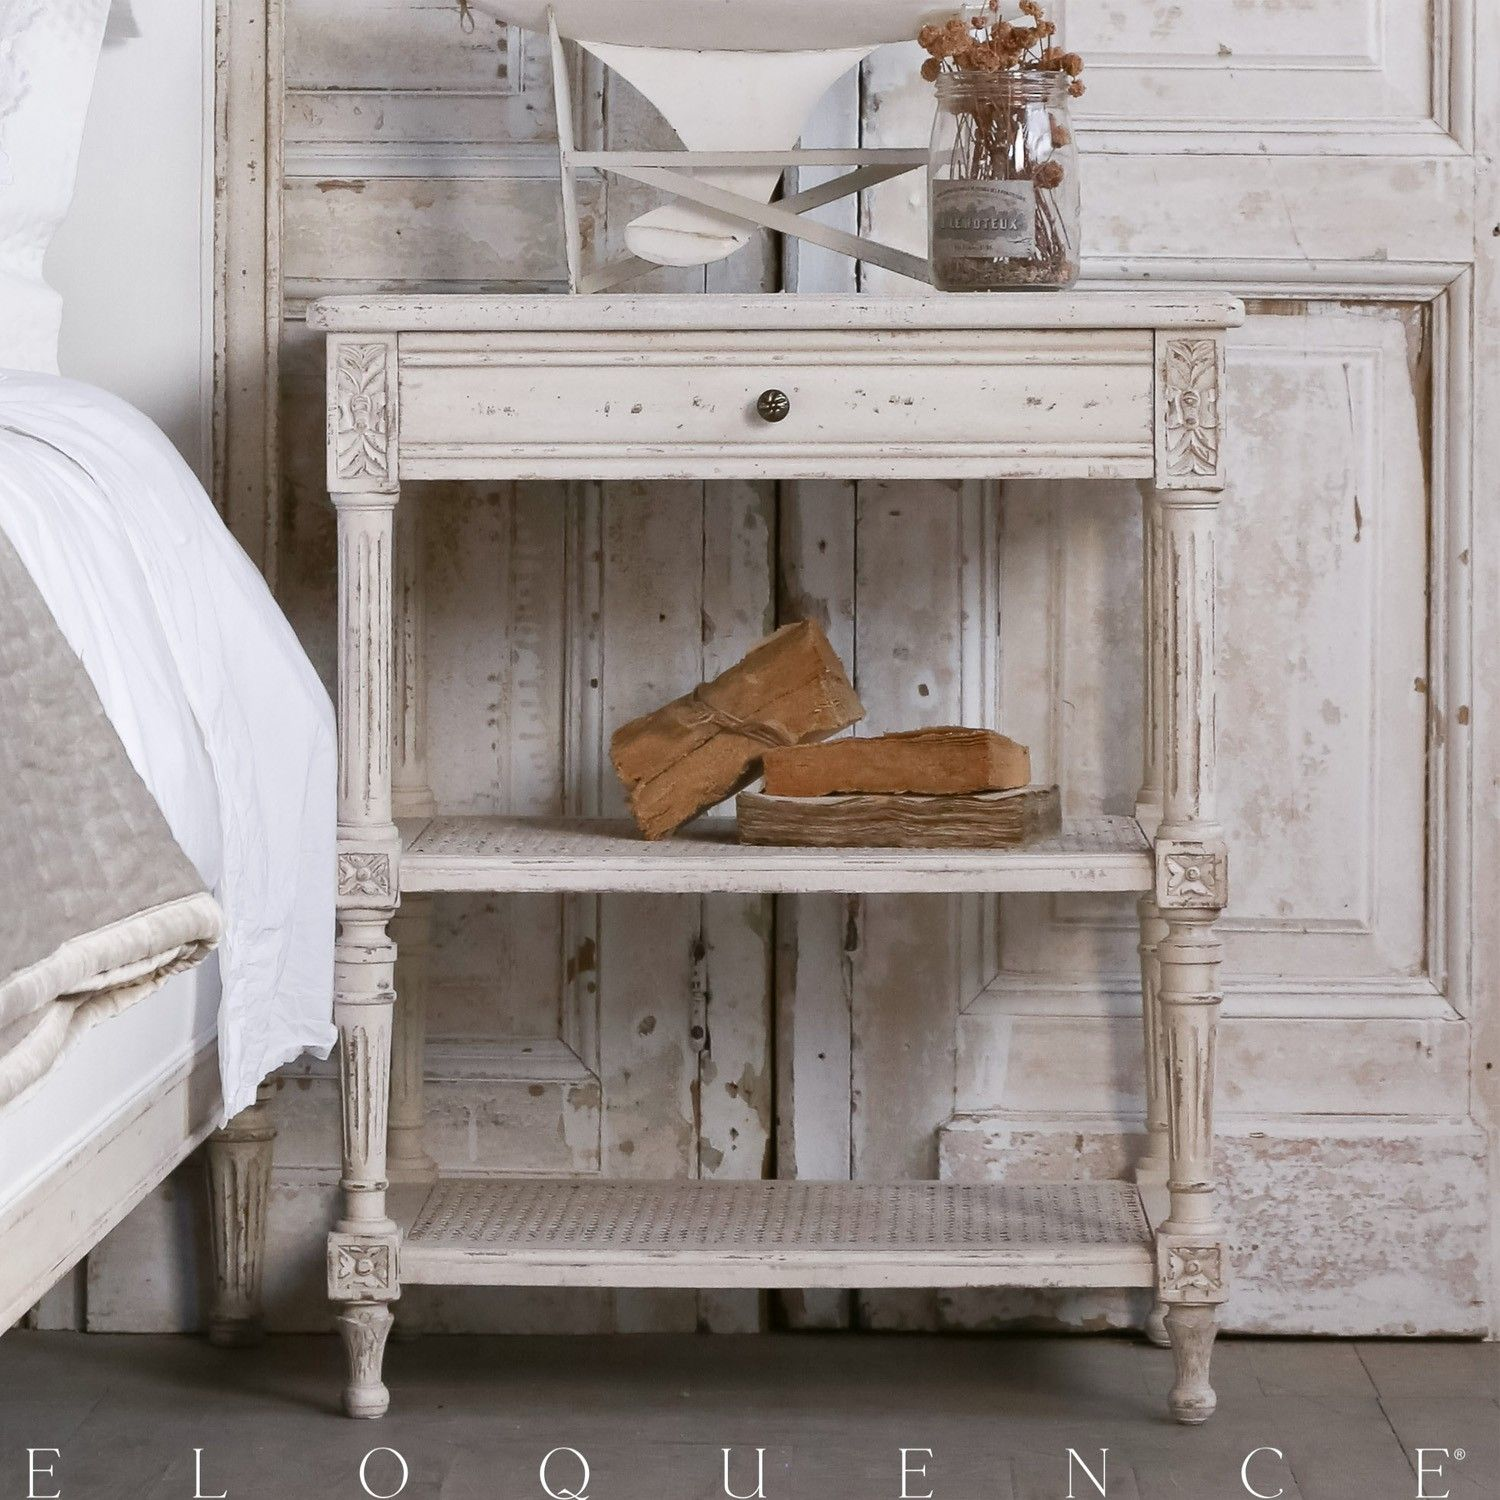 Eloquence® Napoleon Nightstand in Louis XVI Style